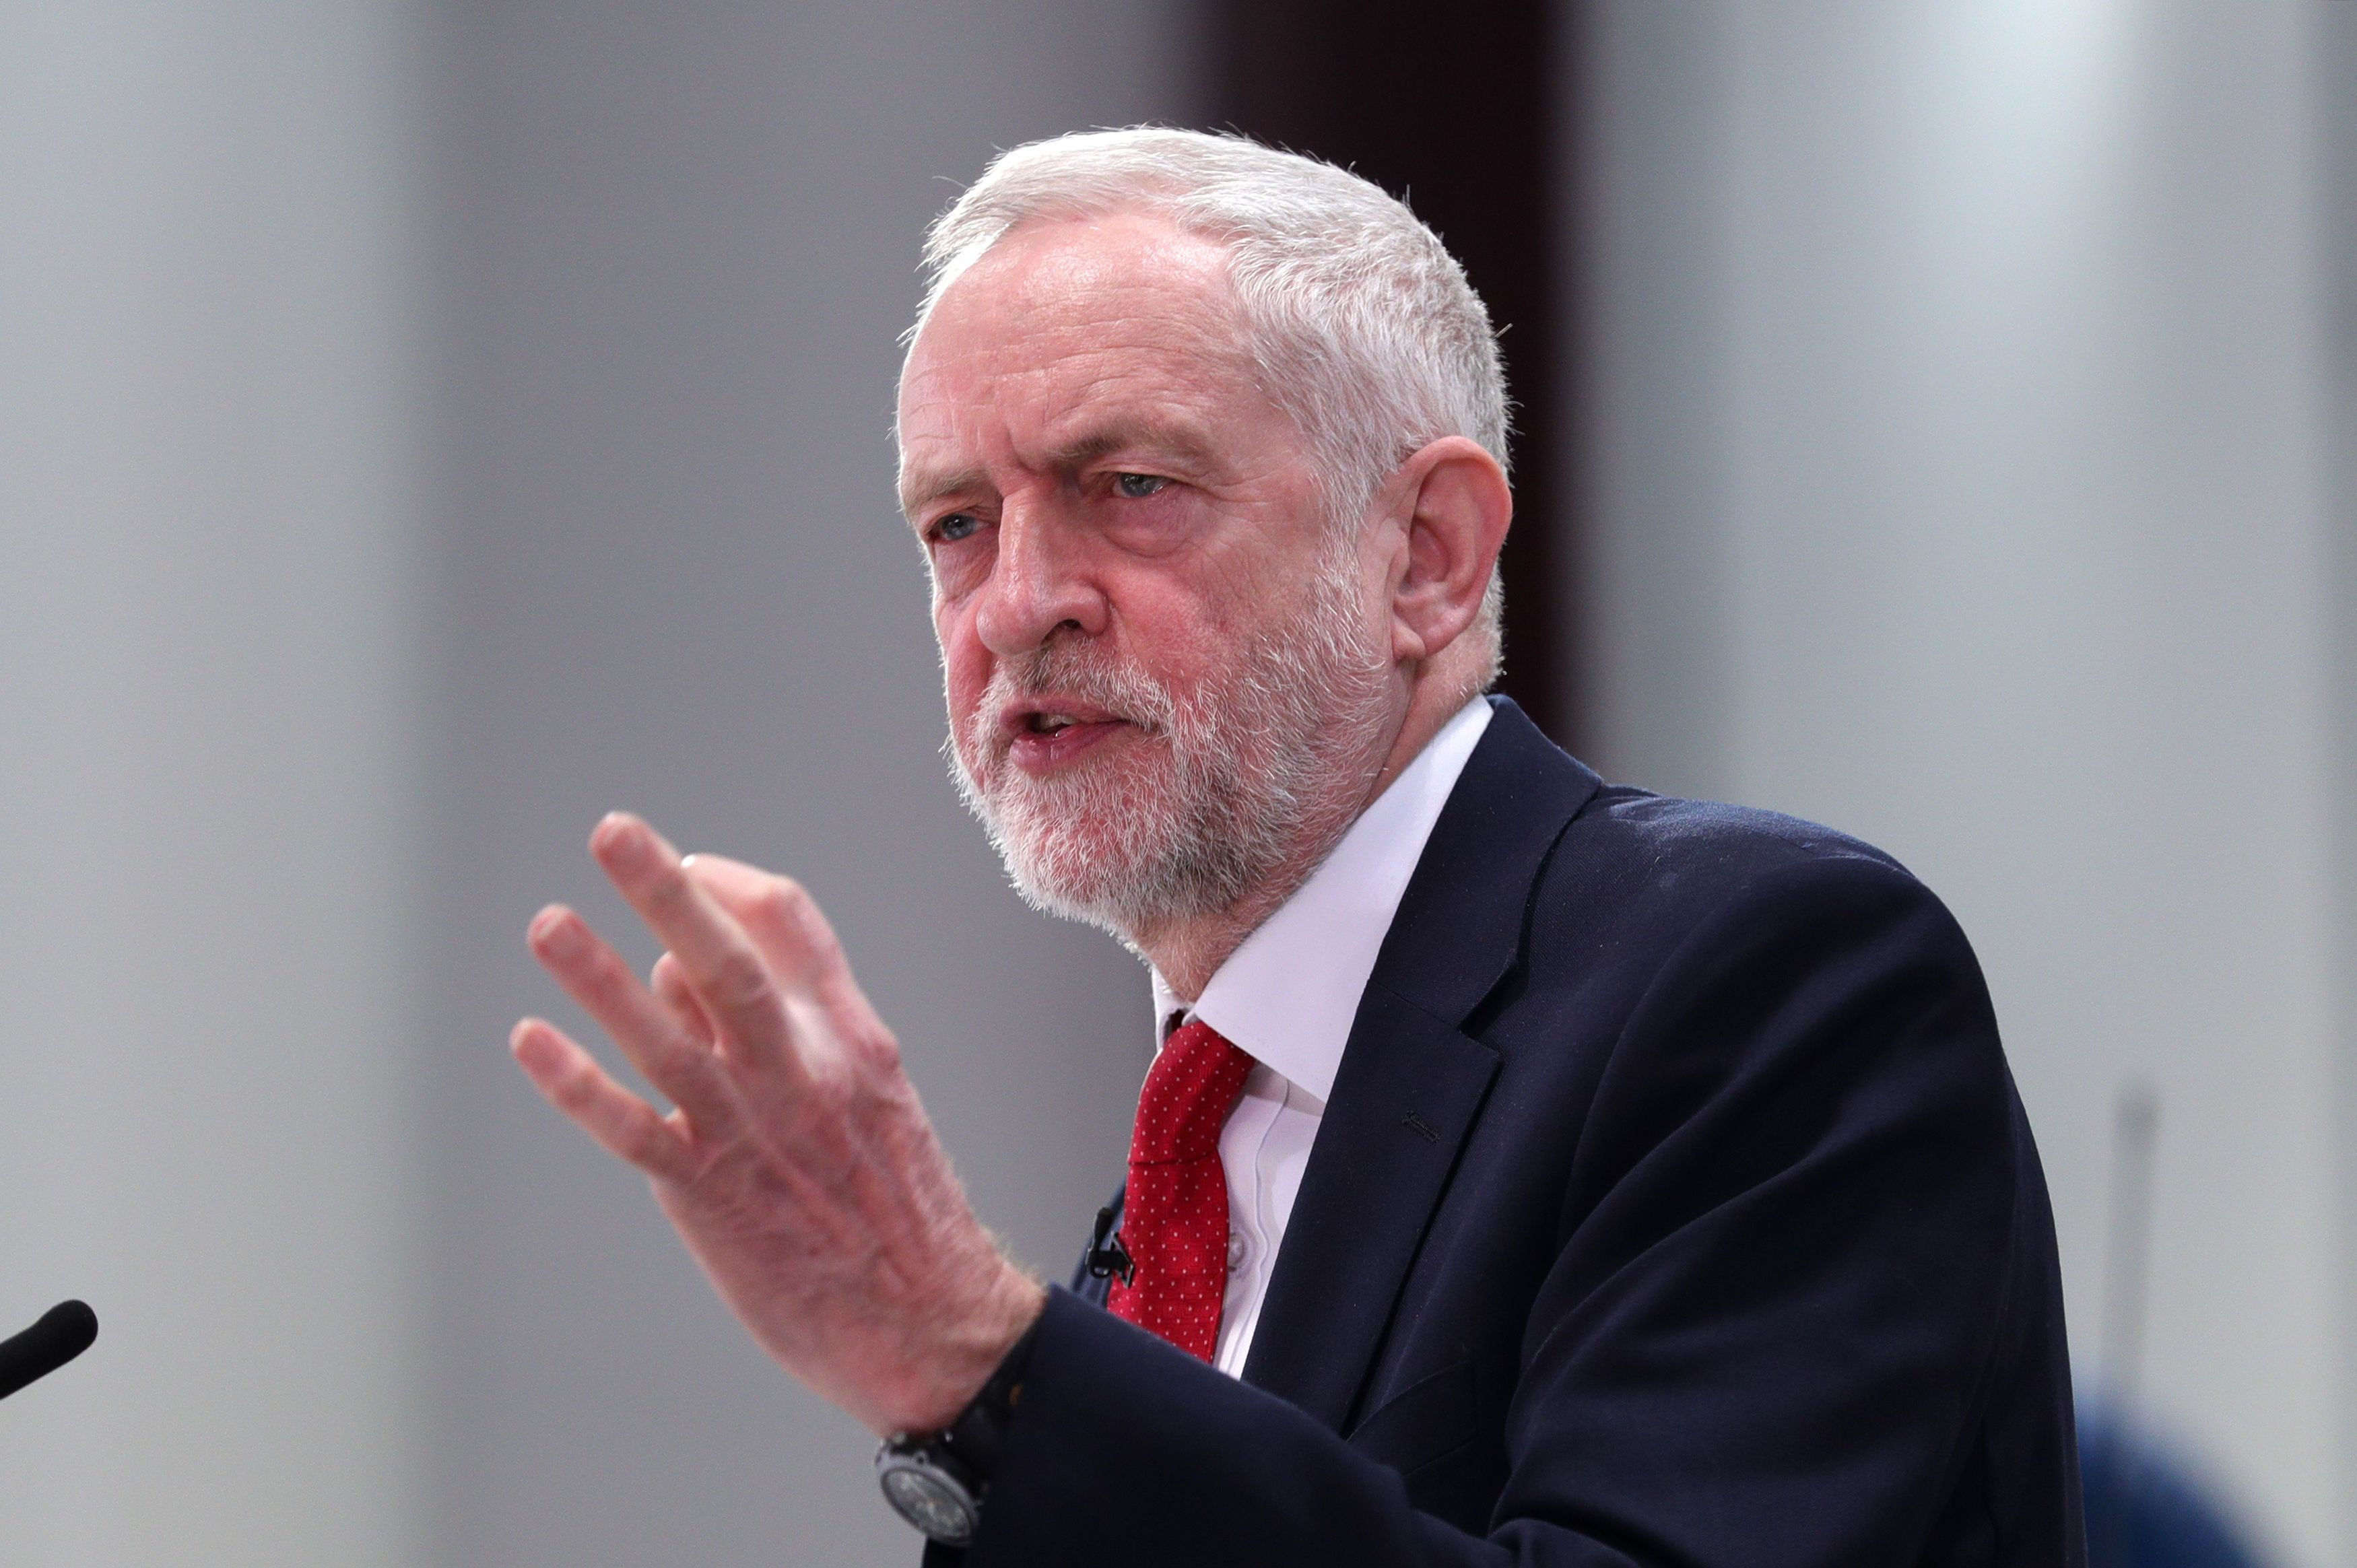 UK Labour suspends members over anti-Semitic Facebook page